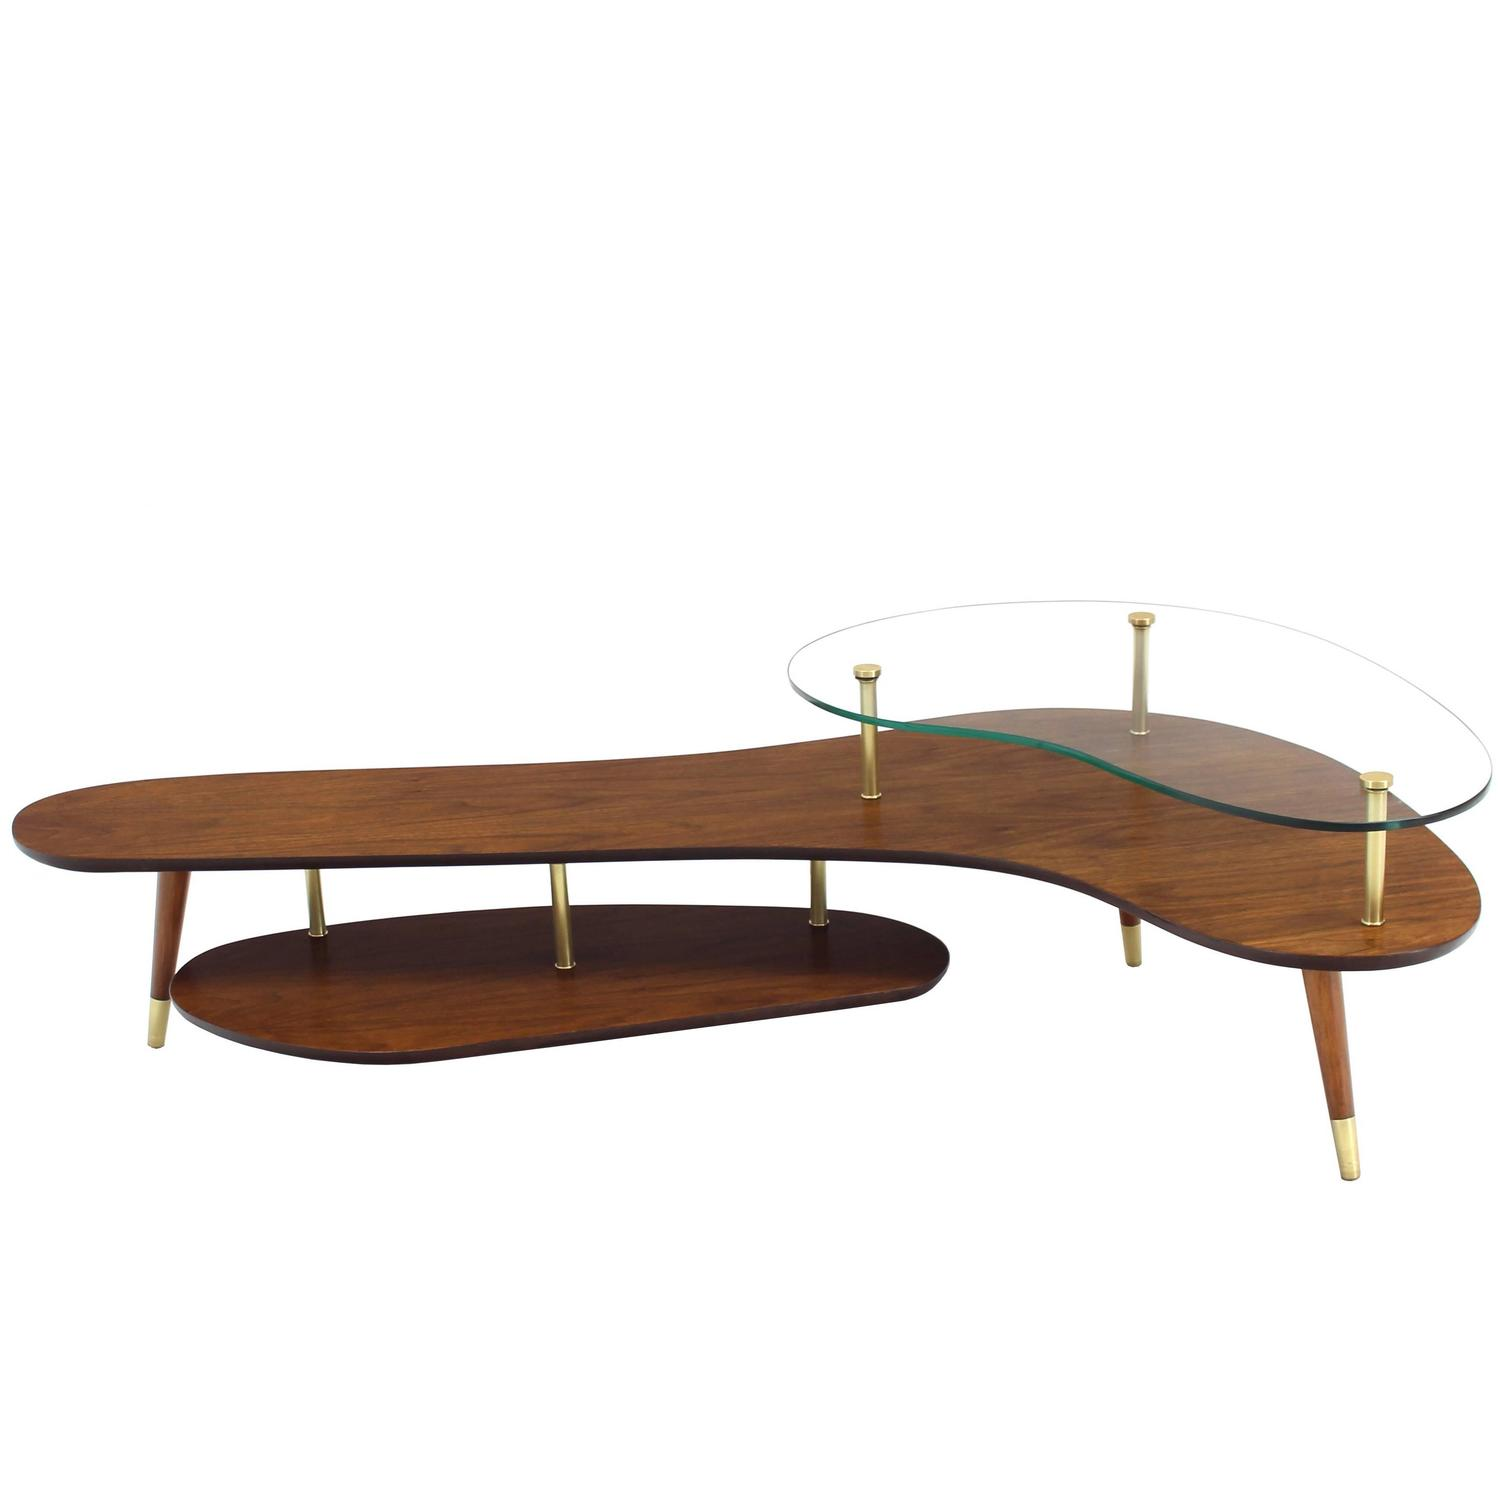 Boomerang Shape Coffee Table With Glass Top For Sale At